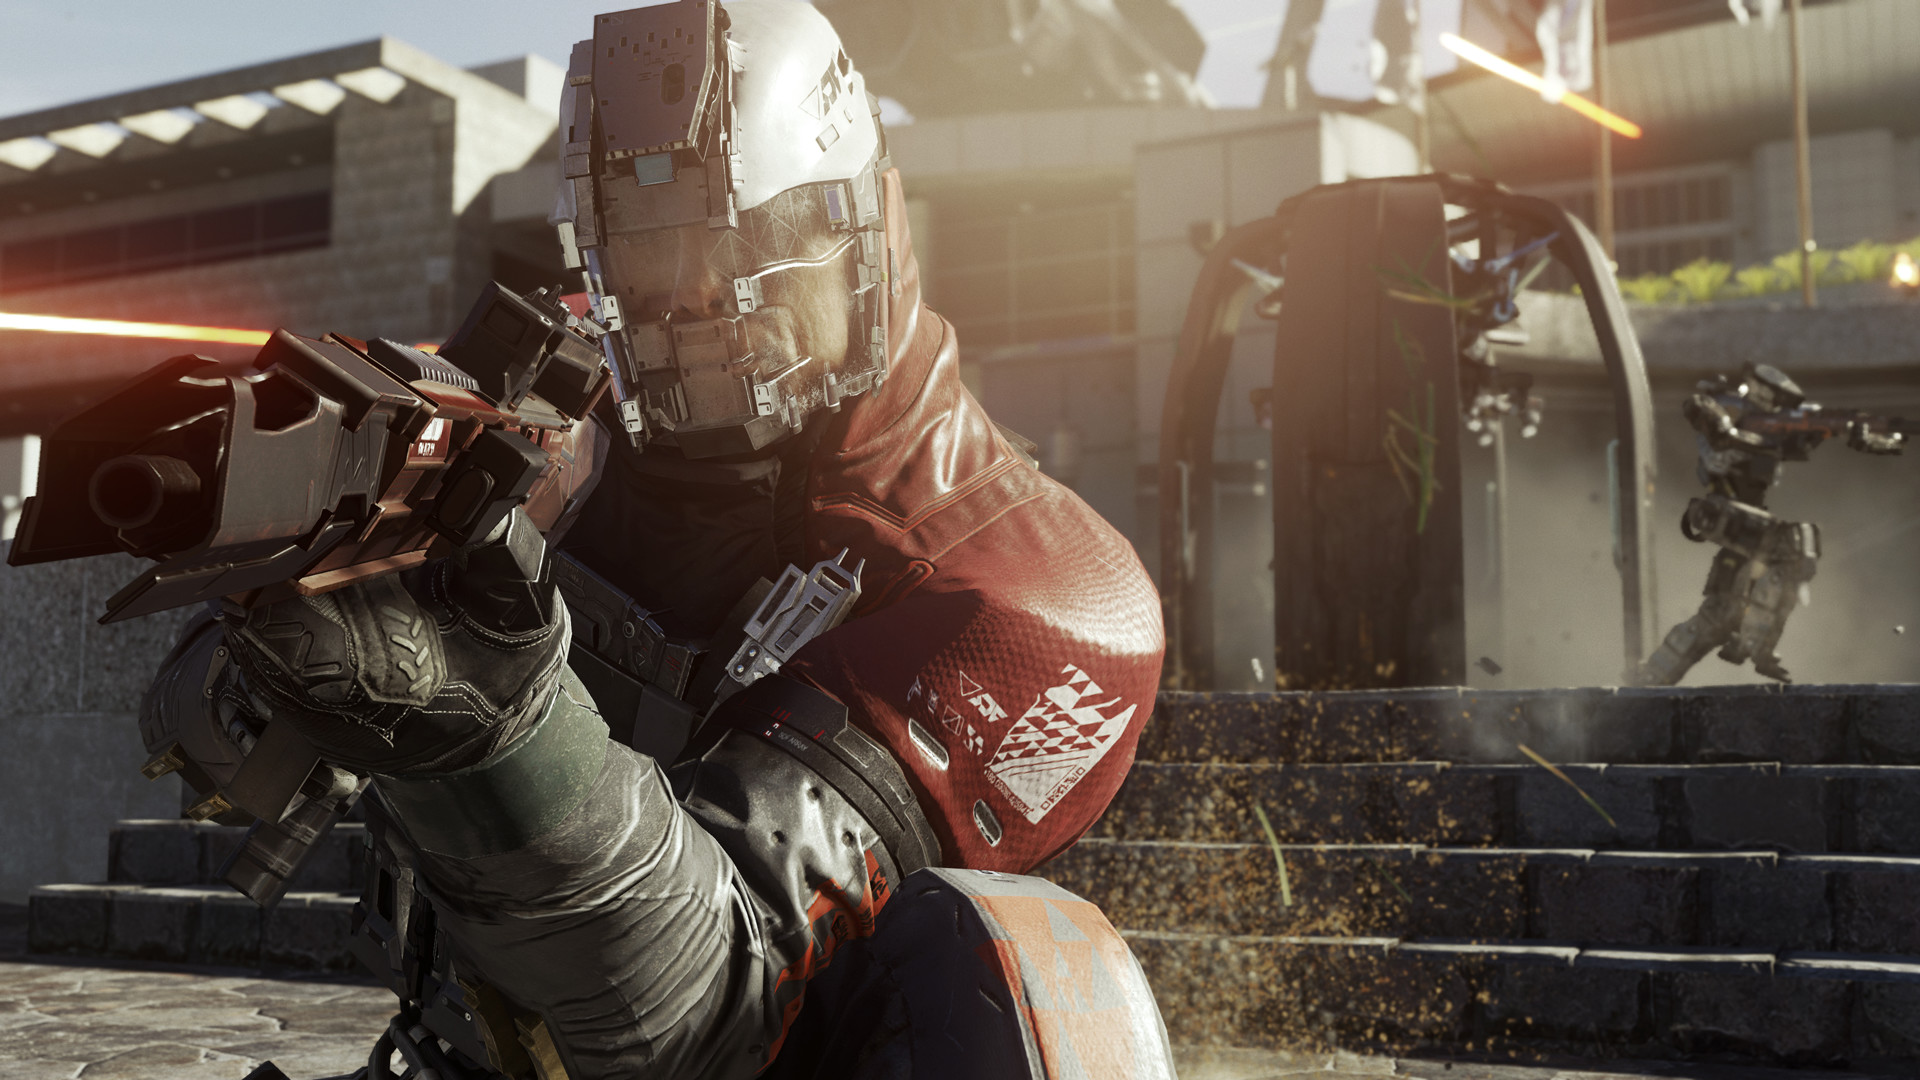 download call of duty infinite warfare digital deluxe edition include all dlc and update global cd key free 2017 gratis for pc playstation 4 ps4 ps3 xbox one 360 multiplayer add-on mp addon copiapop diskokosmiko zombies pack v0 v1 corepack